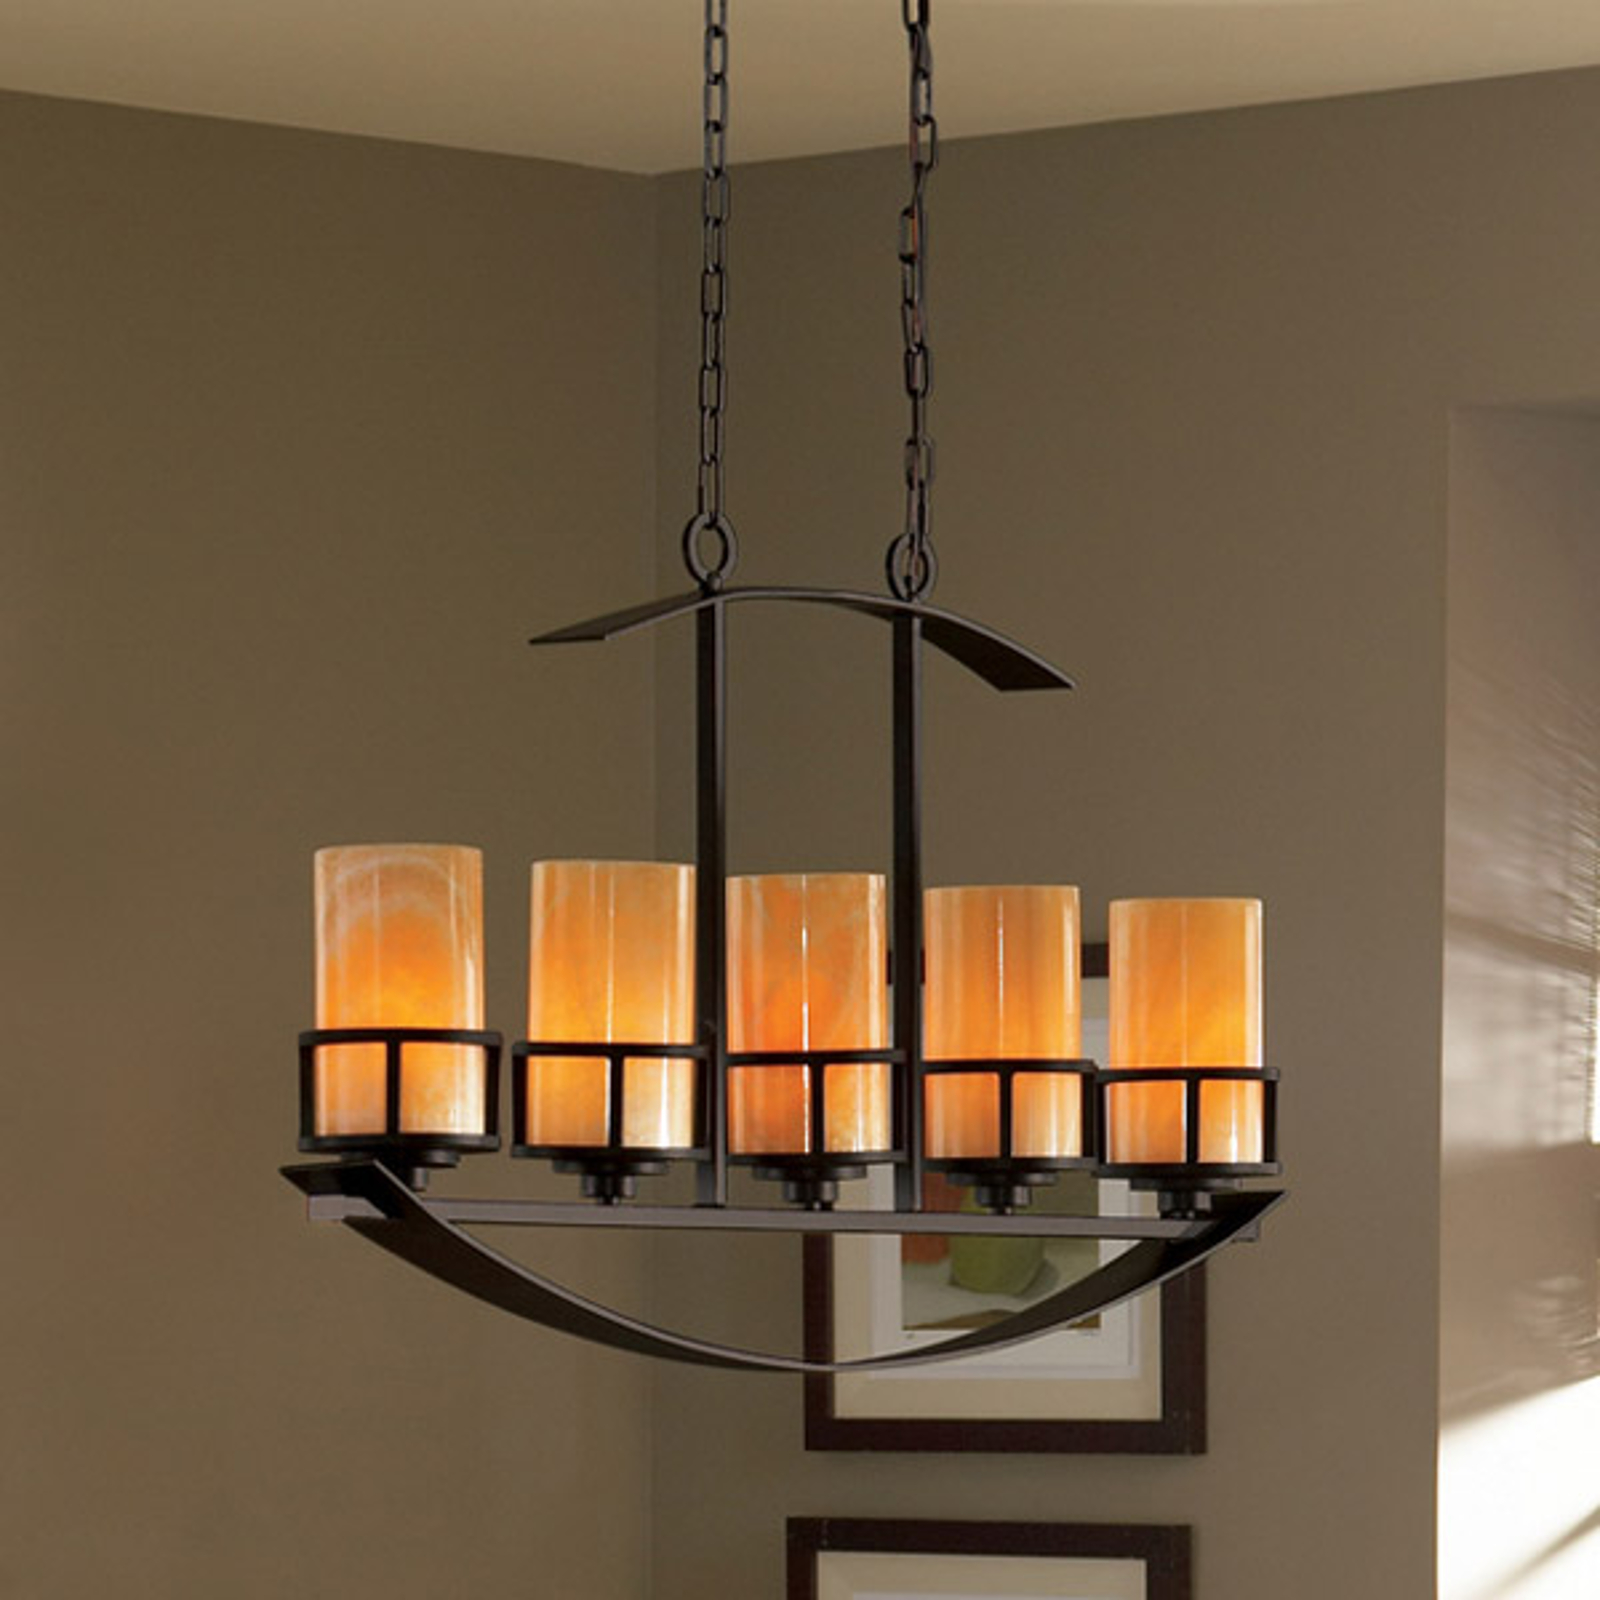 Long pendant light Kyle with 5 onyx lampshades_3048336_1